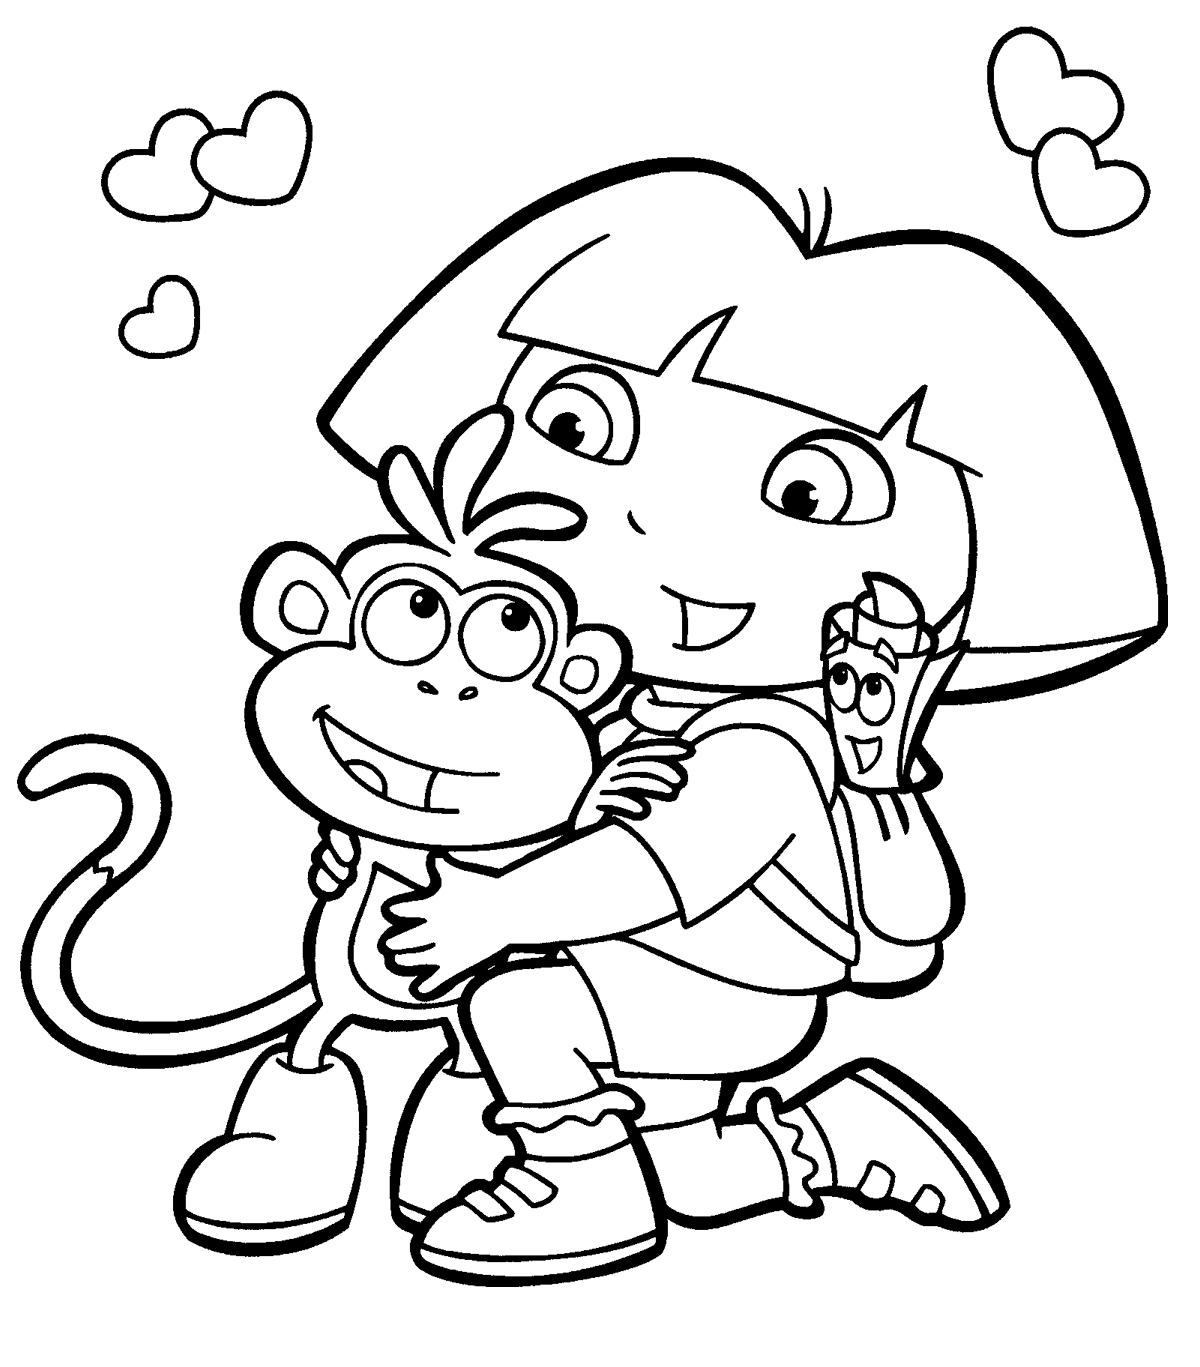 dora coloring picture dora coloring pages free printables momjunction picture dora coloring